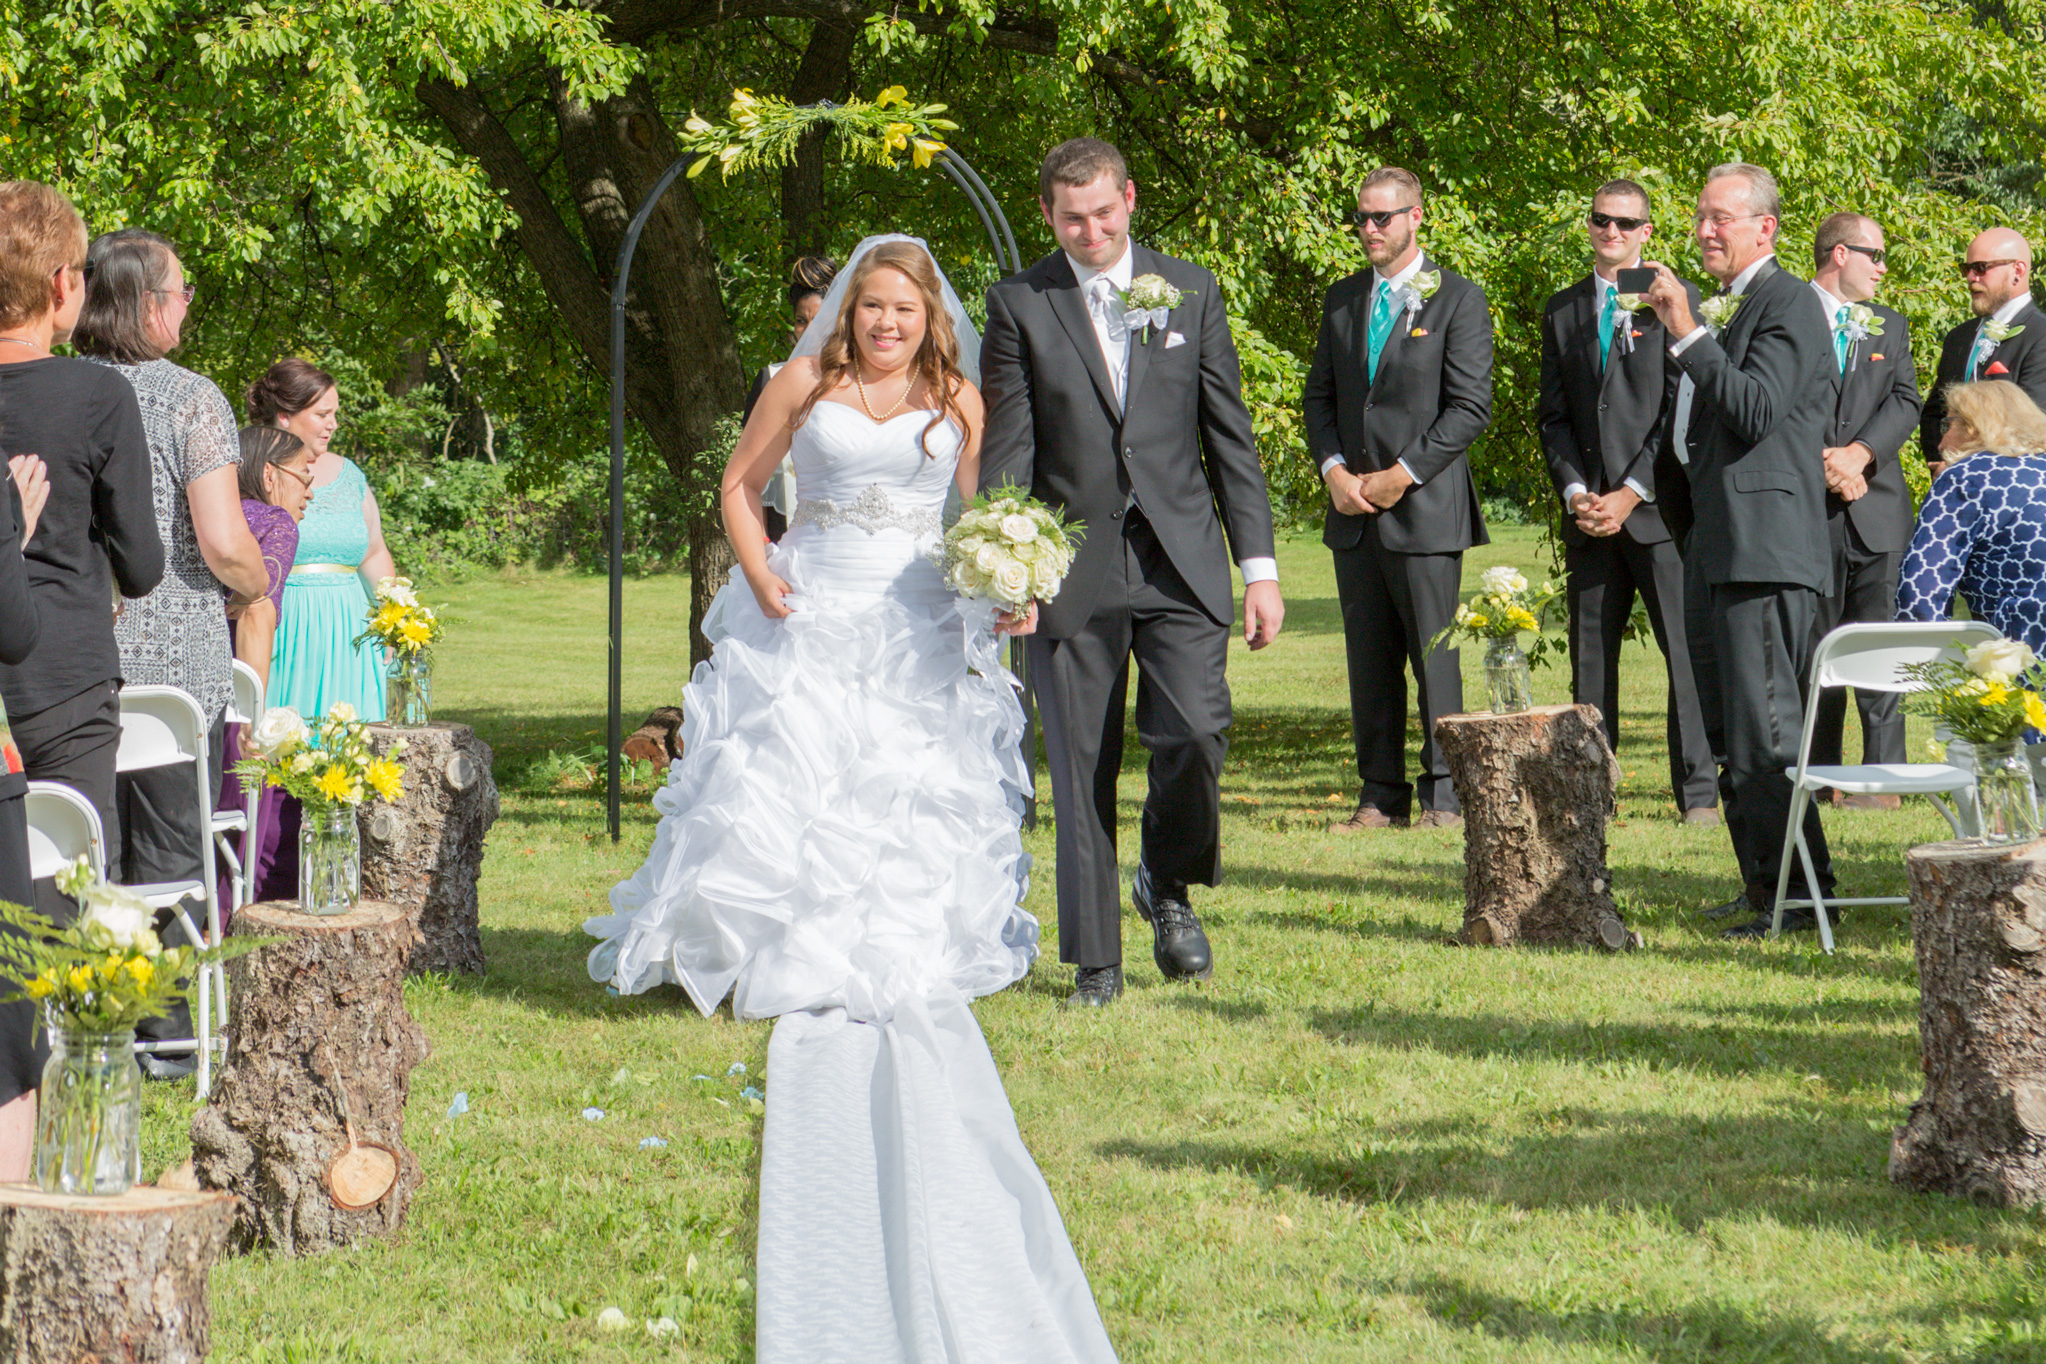 Annie_Matthew_barrington_wedding_outdoor_6.jpg